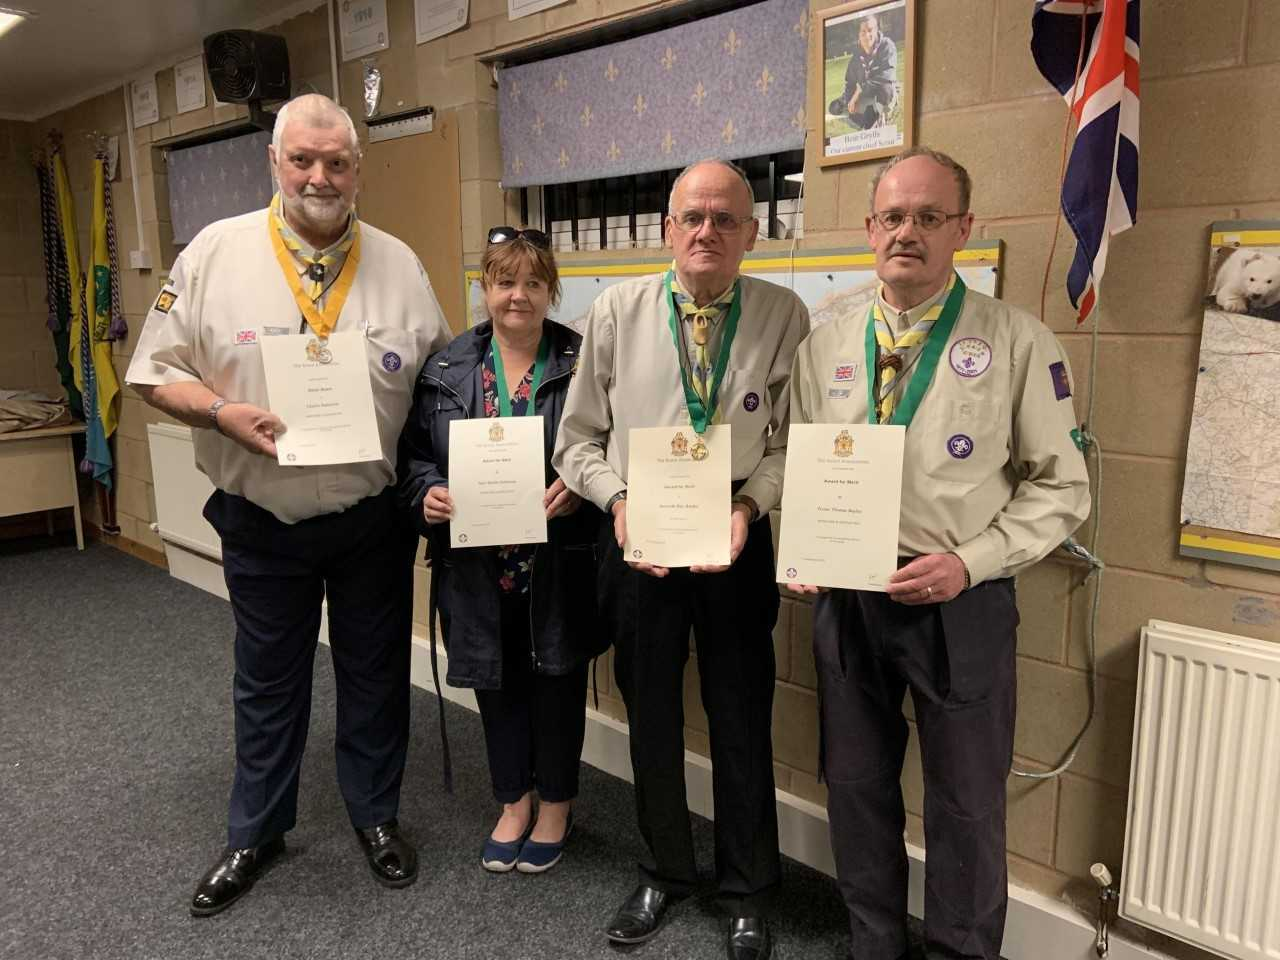 AWARDS: Members of the 1st Littleton Scout Group